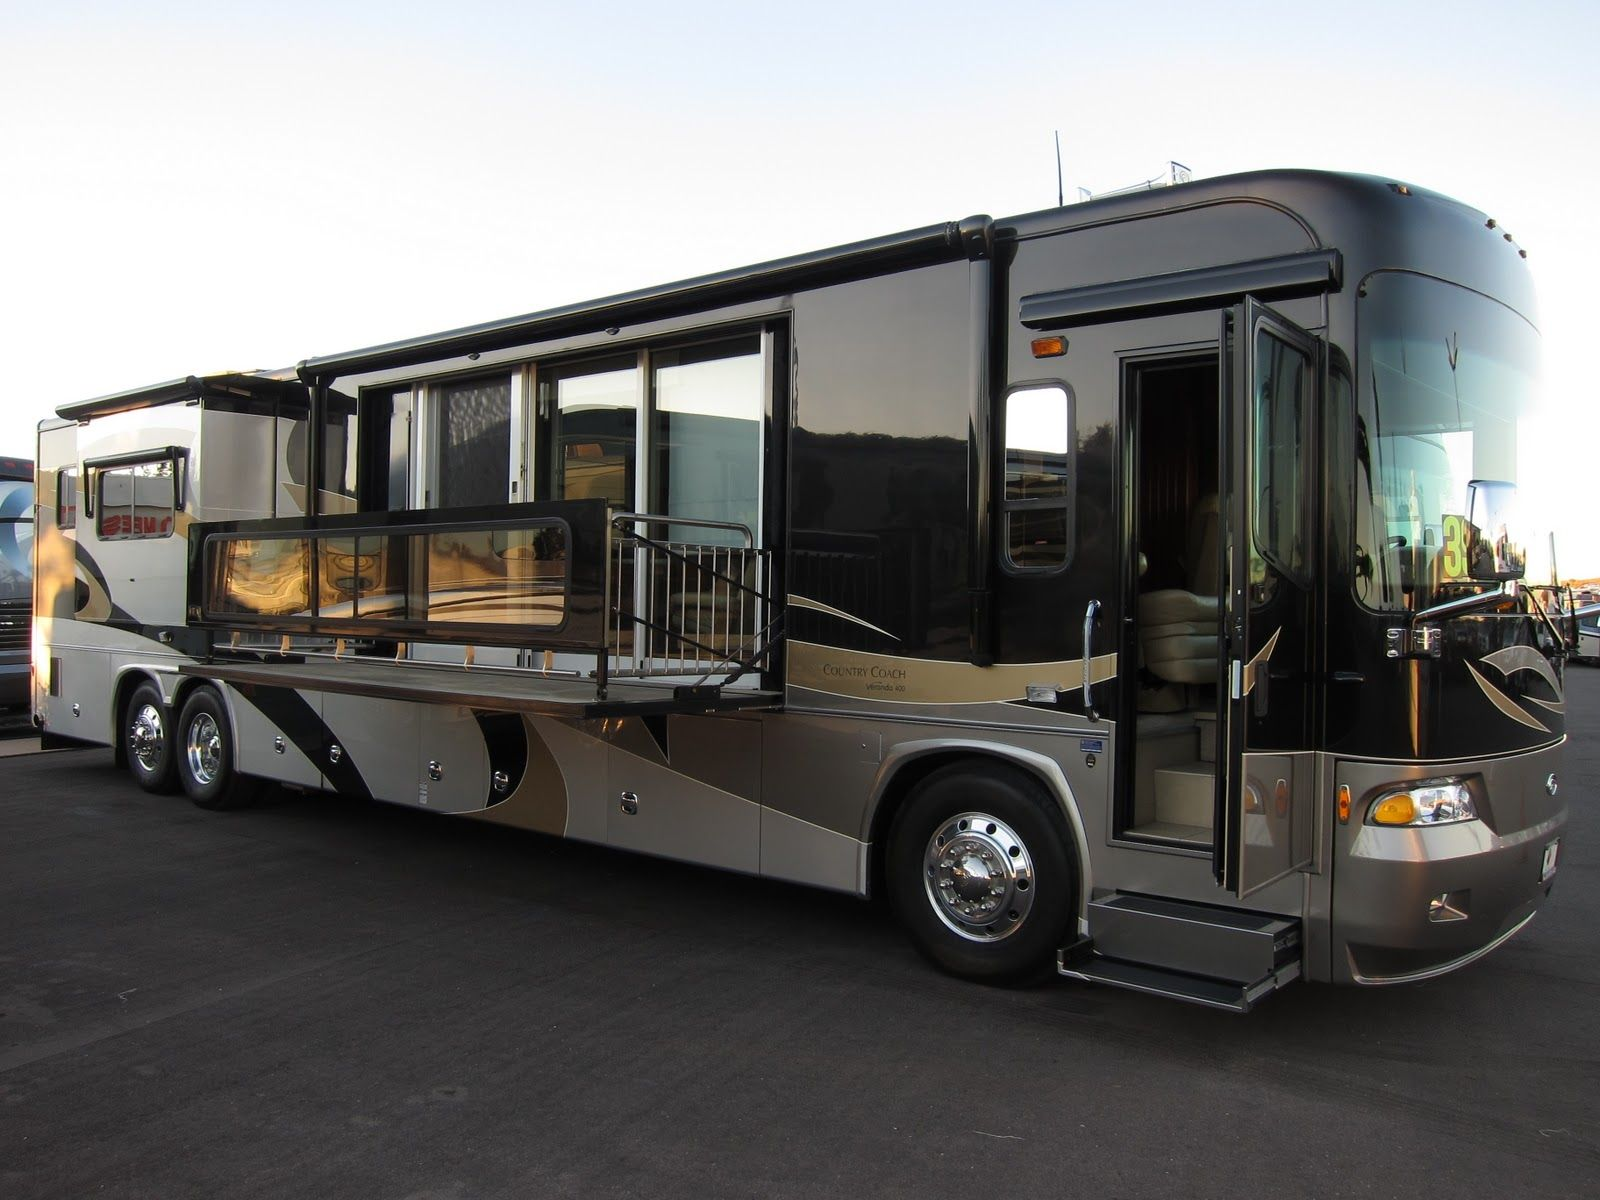 Motors Cars For Sale Property Jobs: Just Noticed That The RV